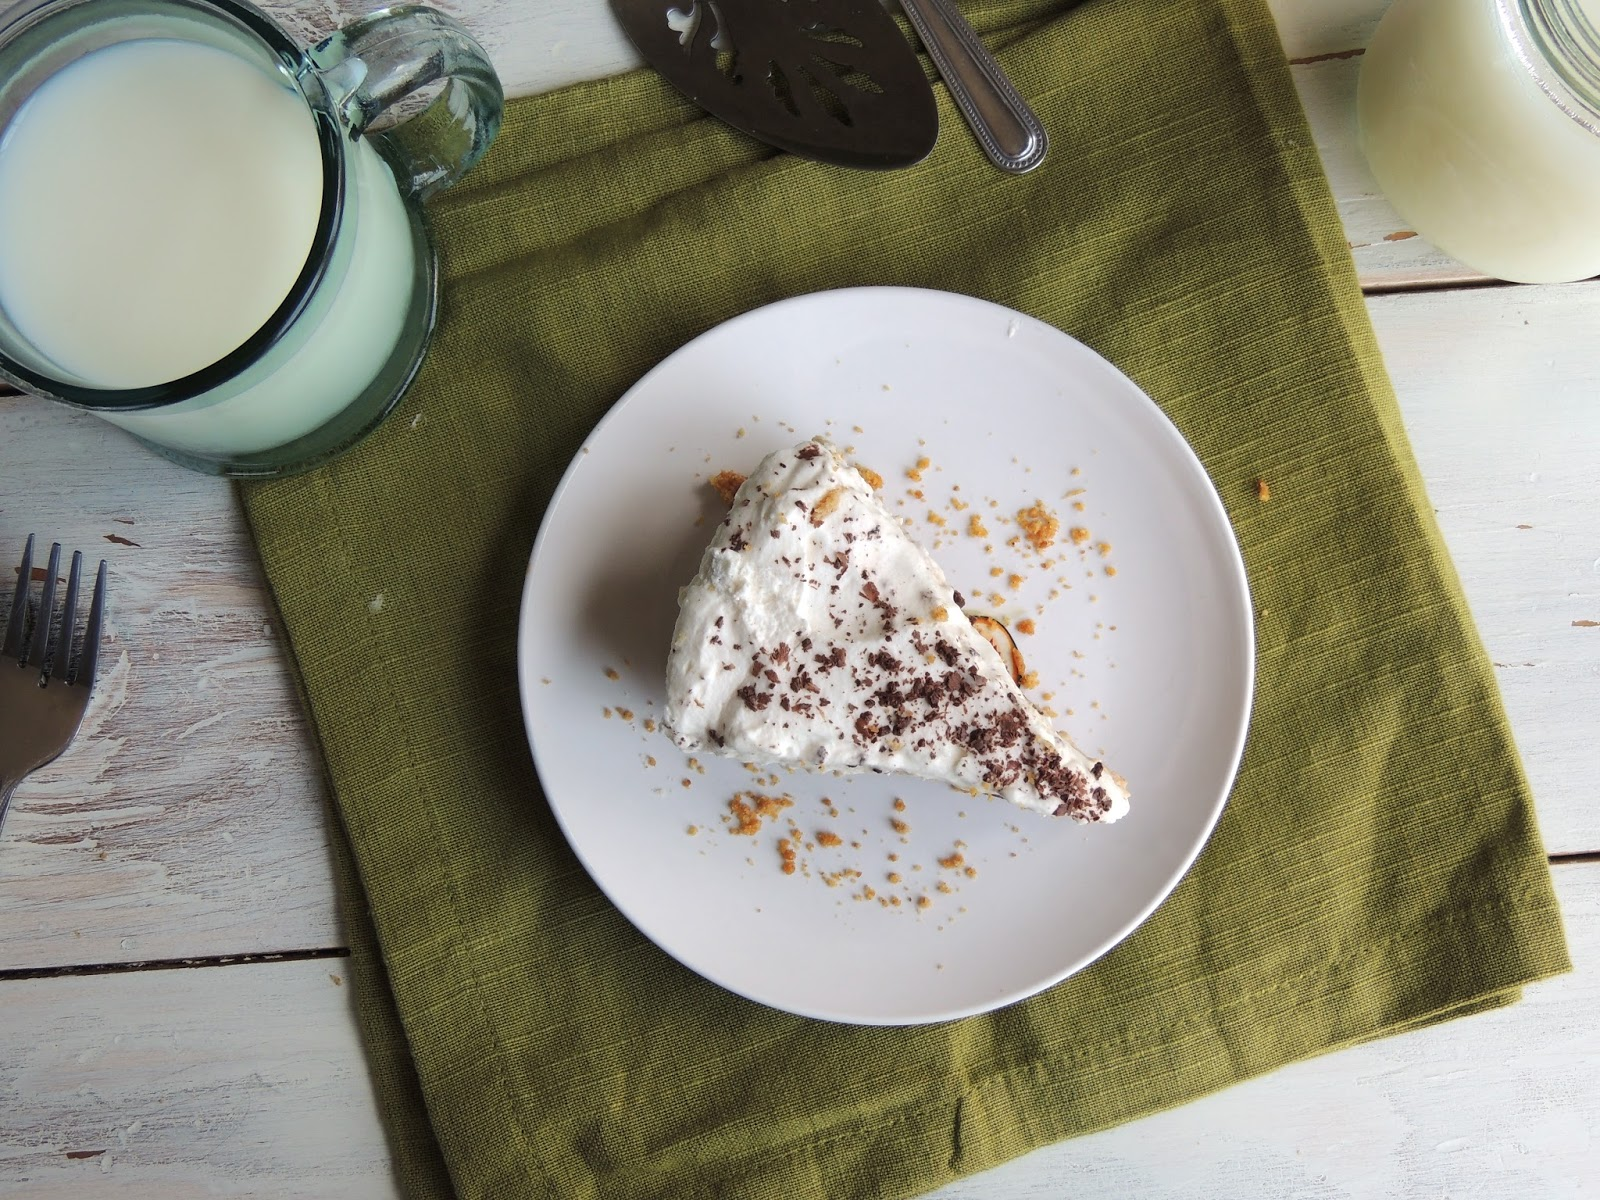 Leave a Happy Plate: Chocolate Peanut Butter Truffle Pie